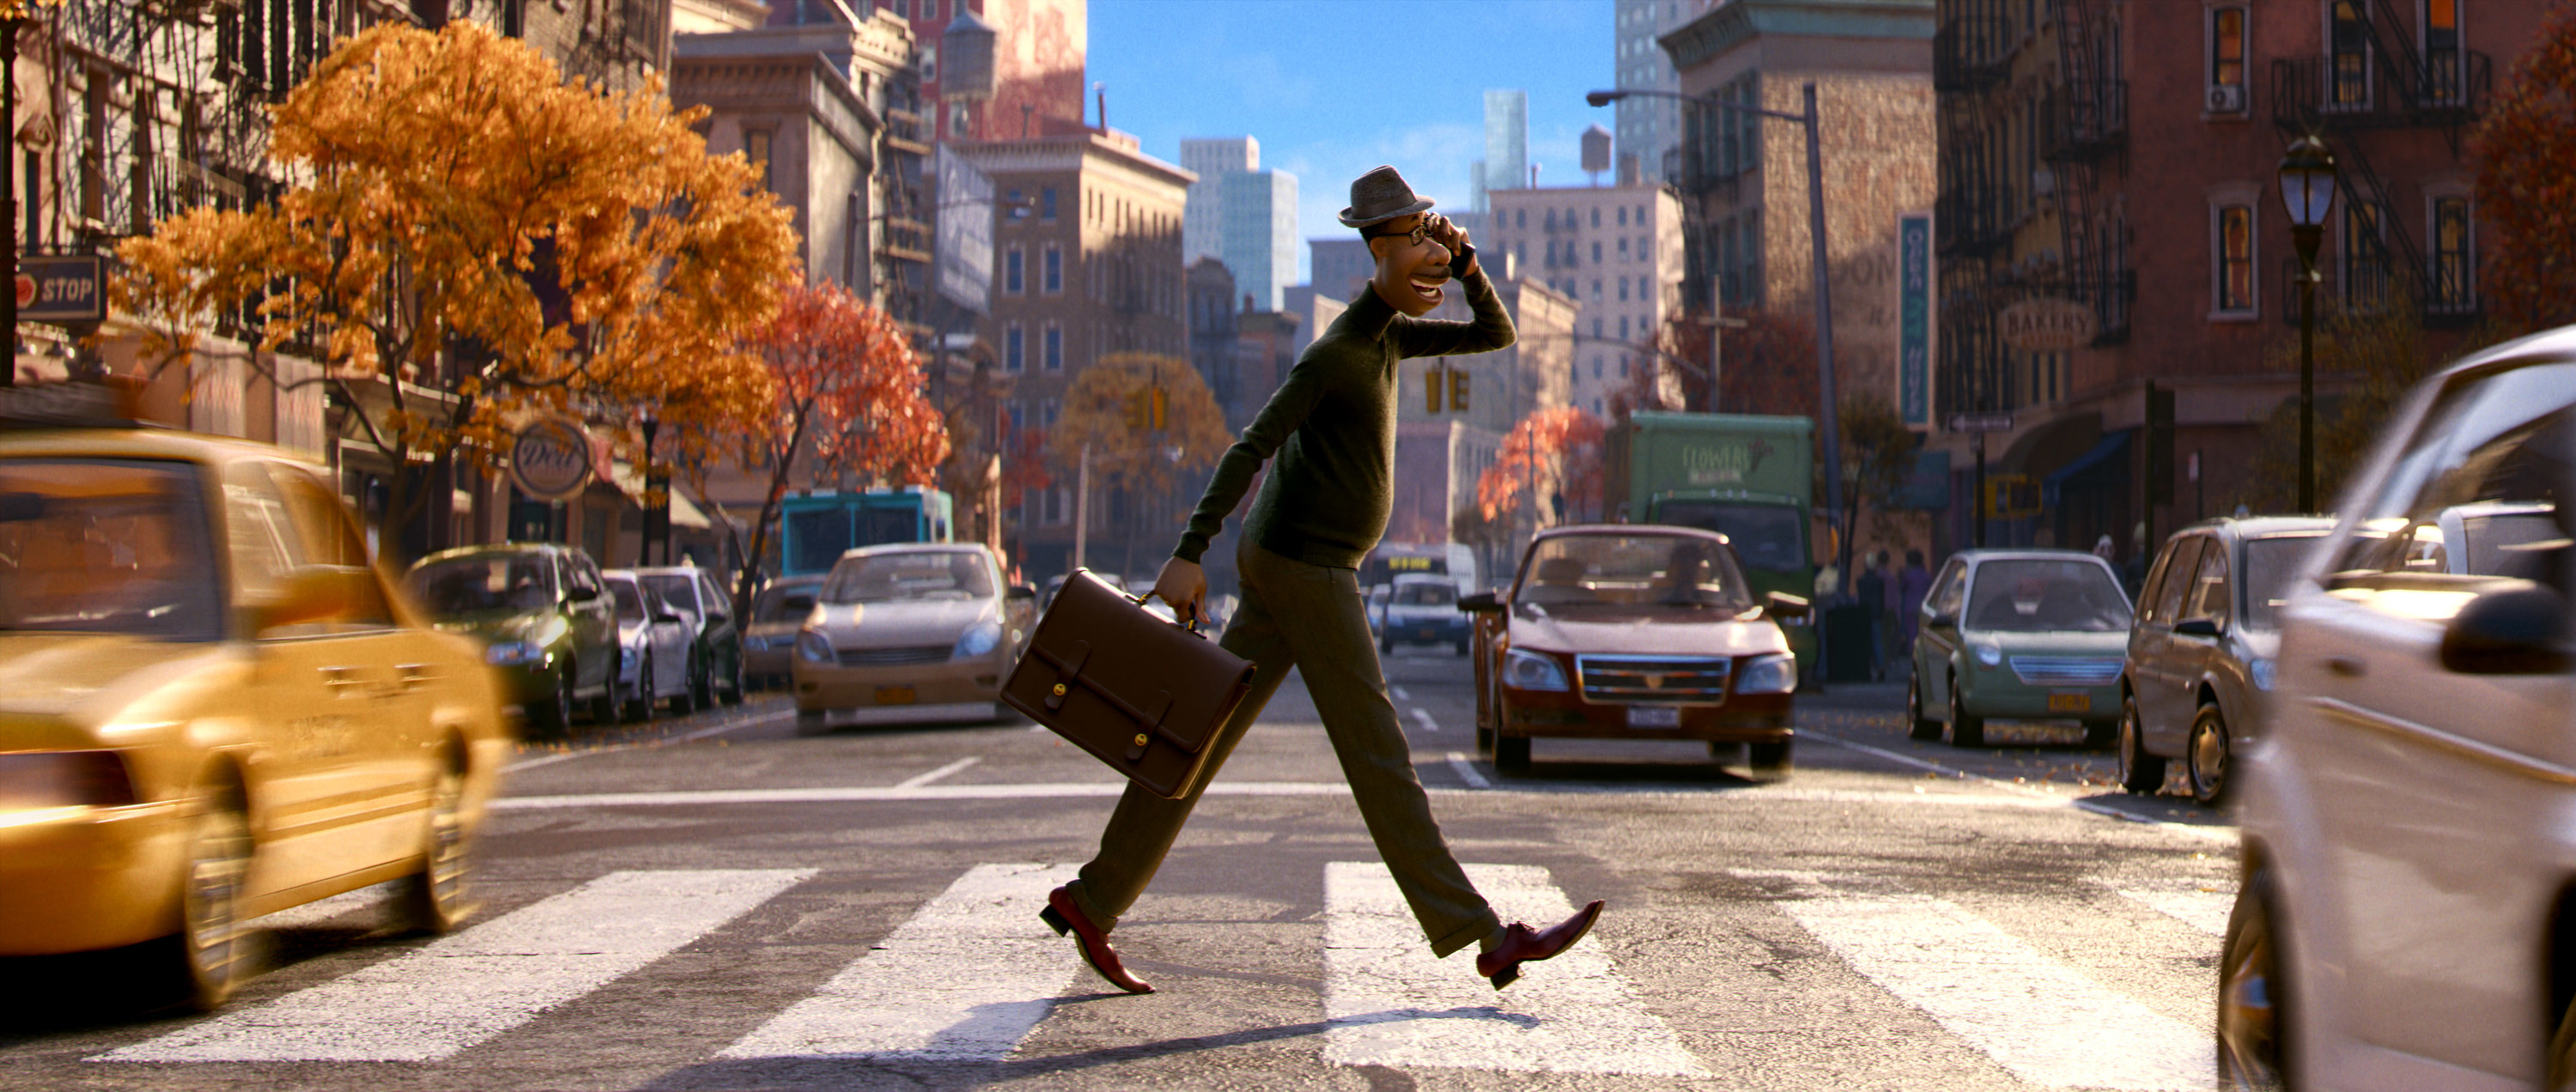 A computer-animated Black man crosses a street carrying a briefcase and talking on a phone